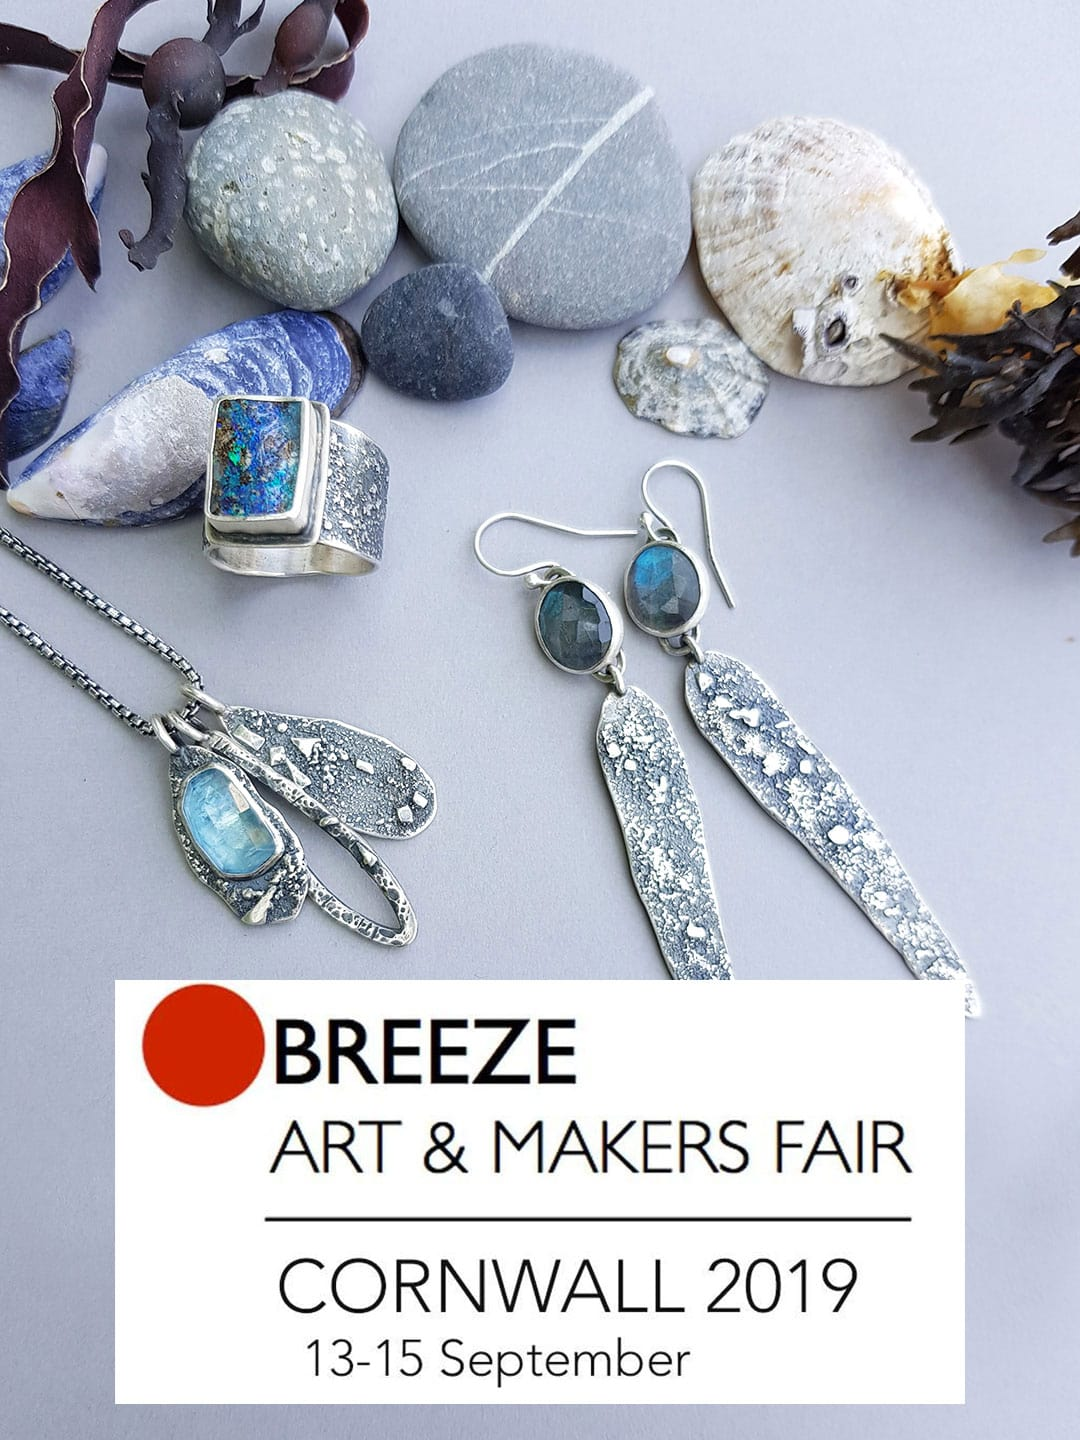 Come see me at Breeze Art & Makers Fair in September!